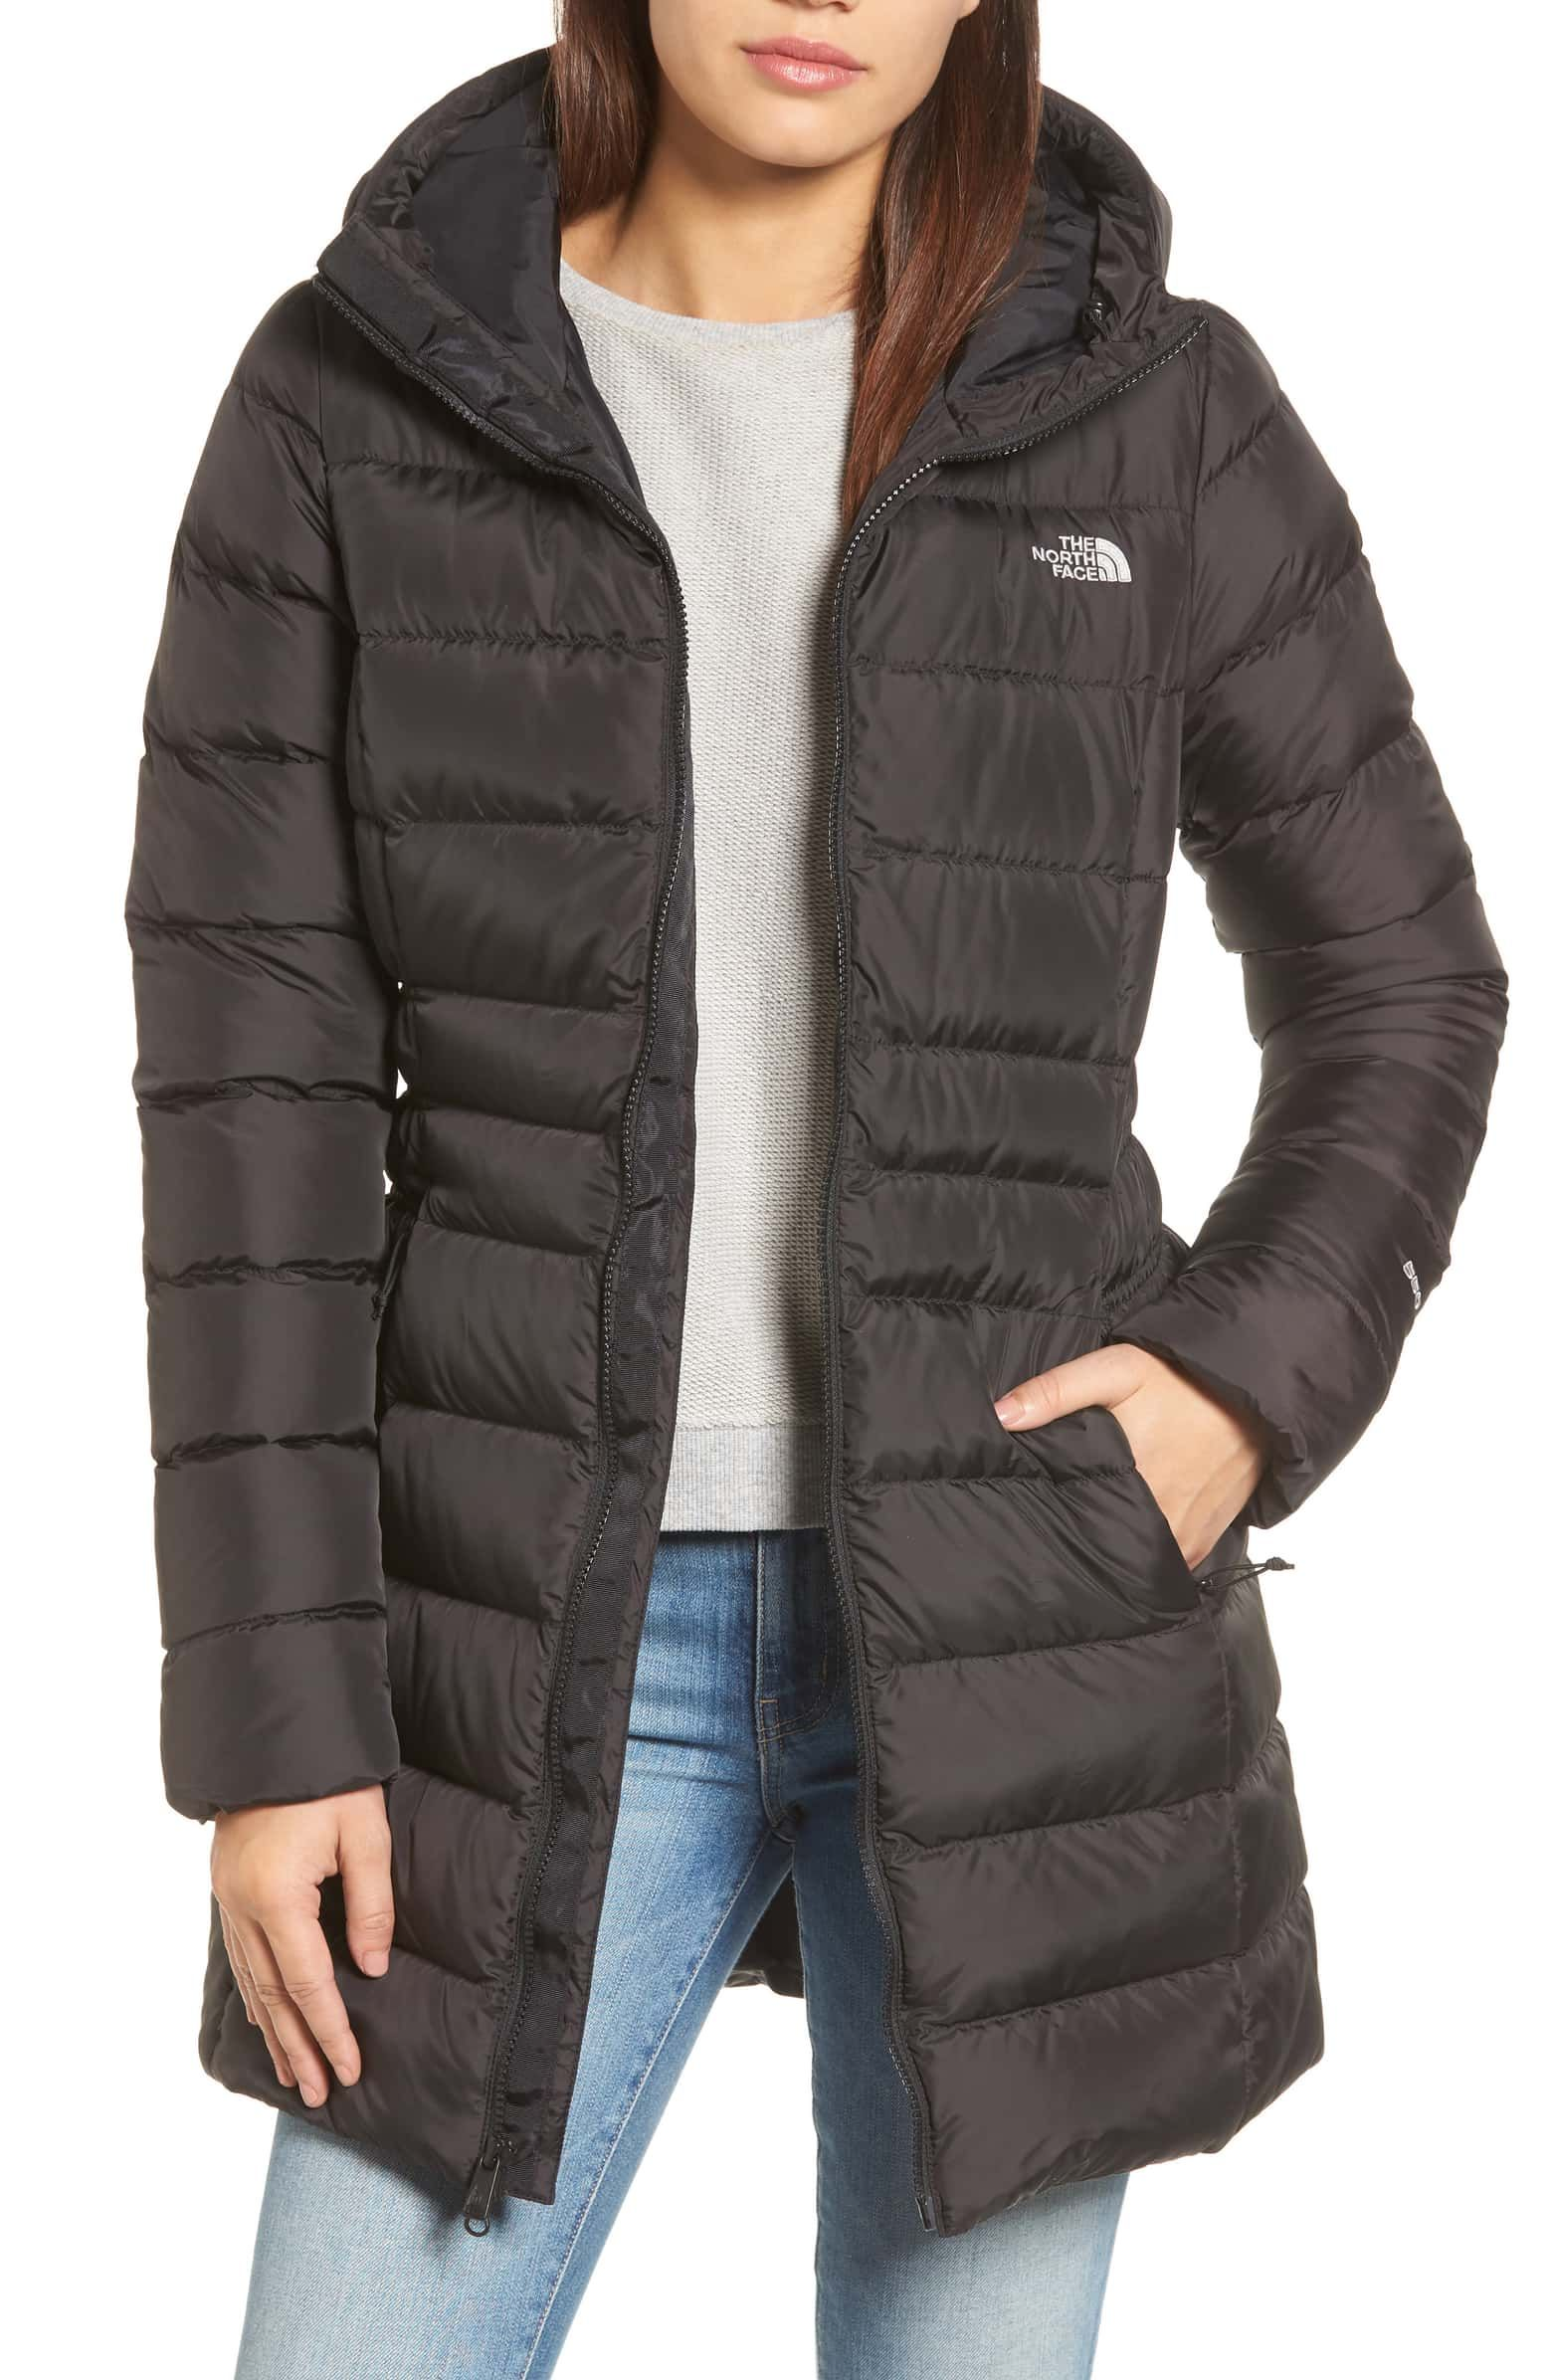 The North Face Gotham Ii Down Parka Nordstrom Long North Face Jacket North Face Jacket Outfit Black North Face Jacket [ 2392 x 1560 Pixel ]